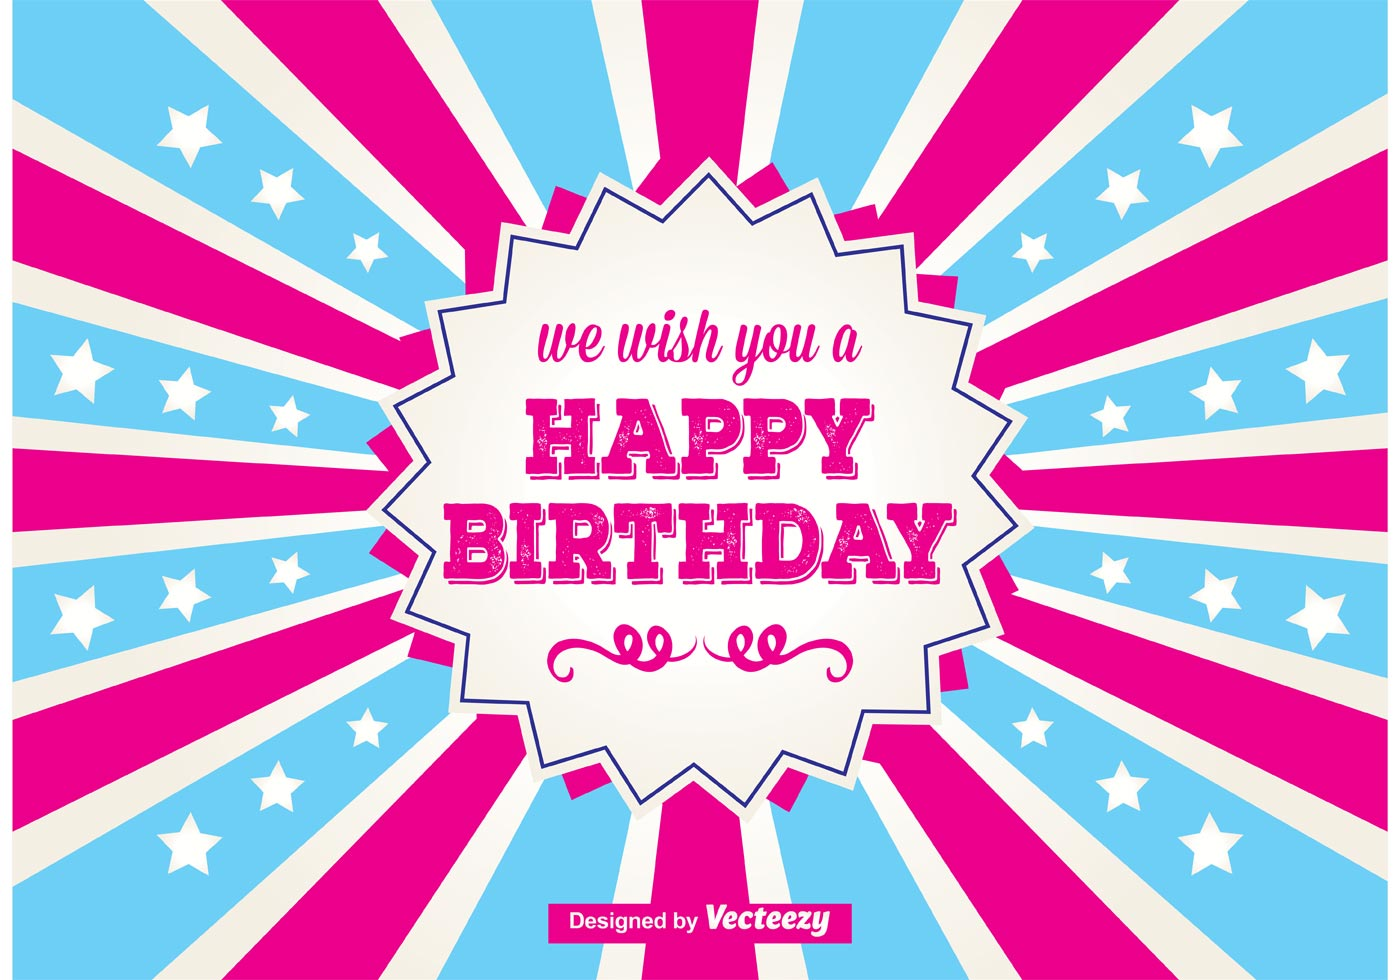 Happy birthday card download free vector art stock - Birthday cards images free download ...